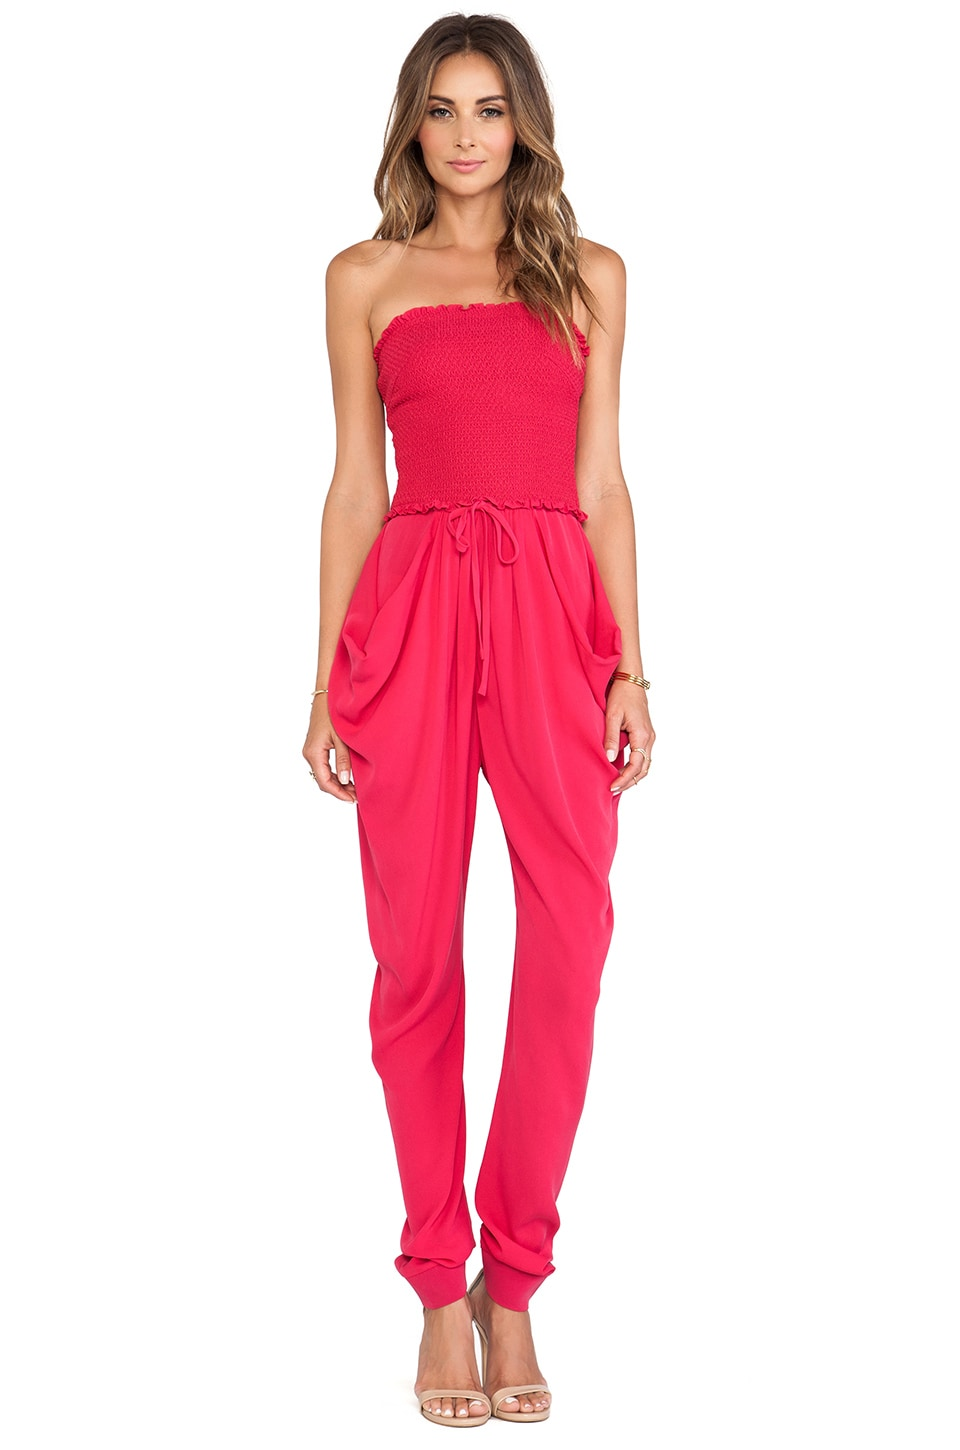 Catherine Malandrino Finesse Strapless Jumpsuit in Geranium